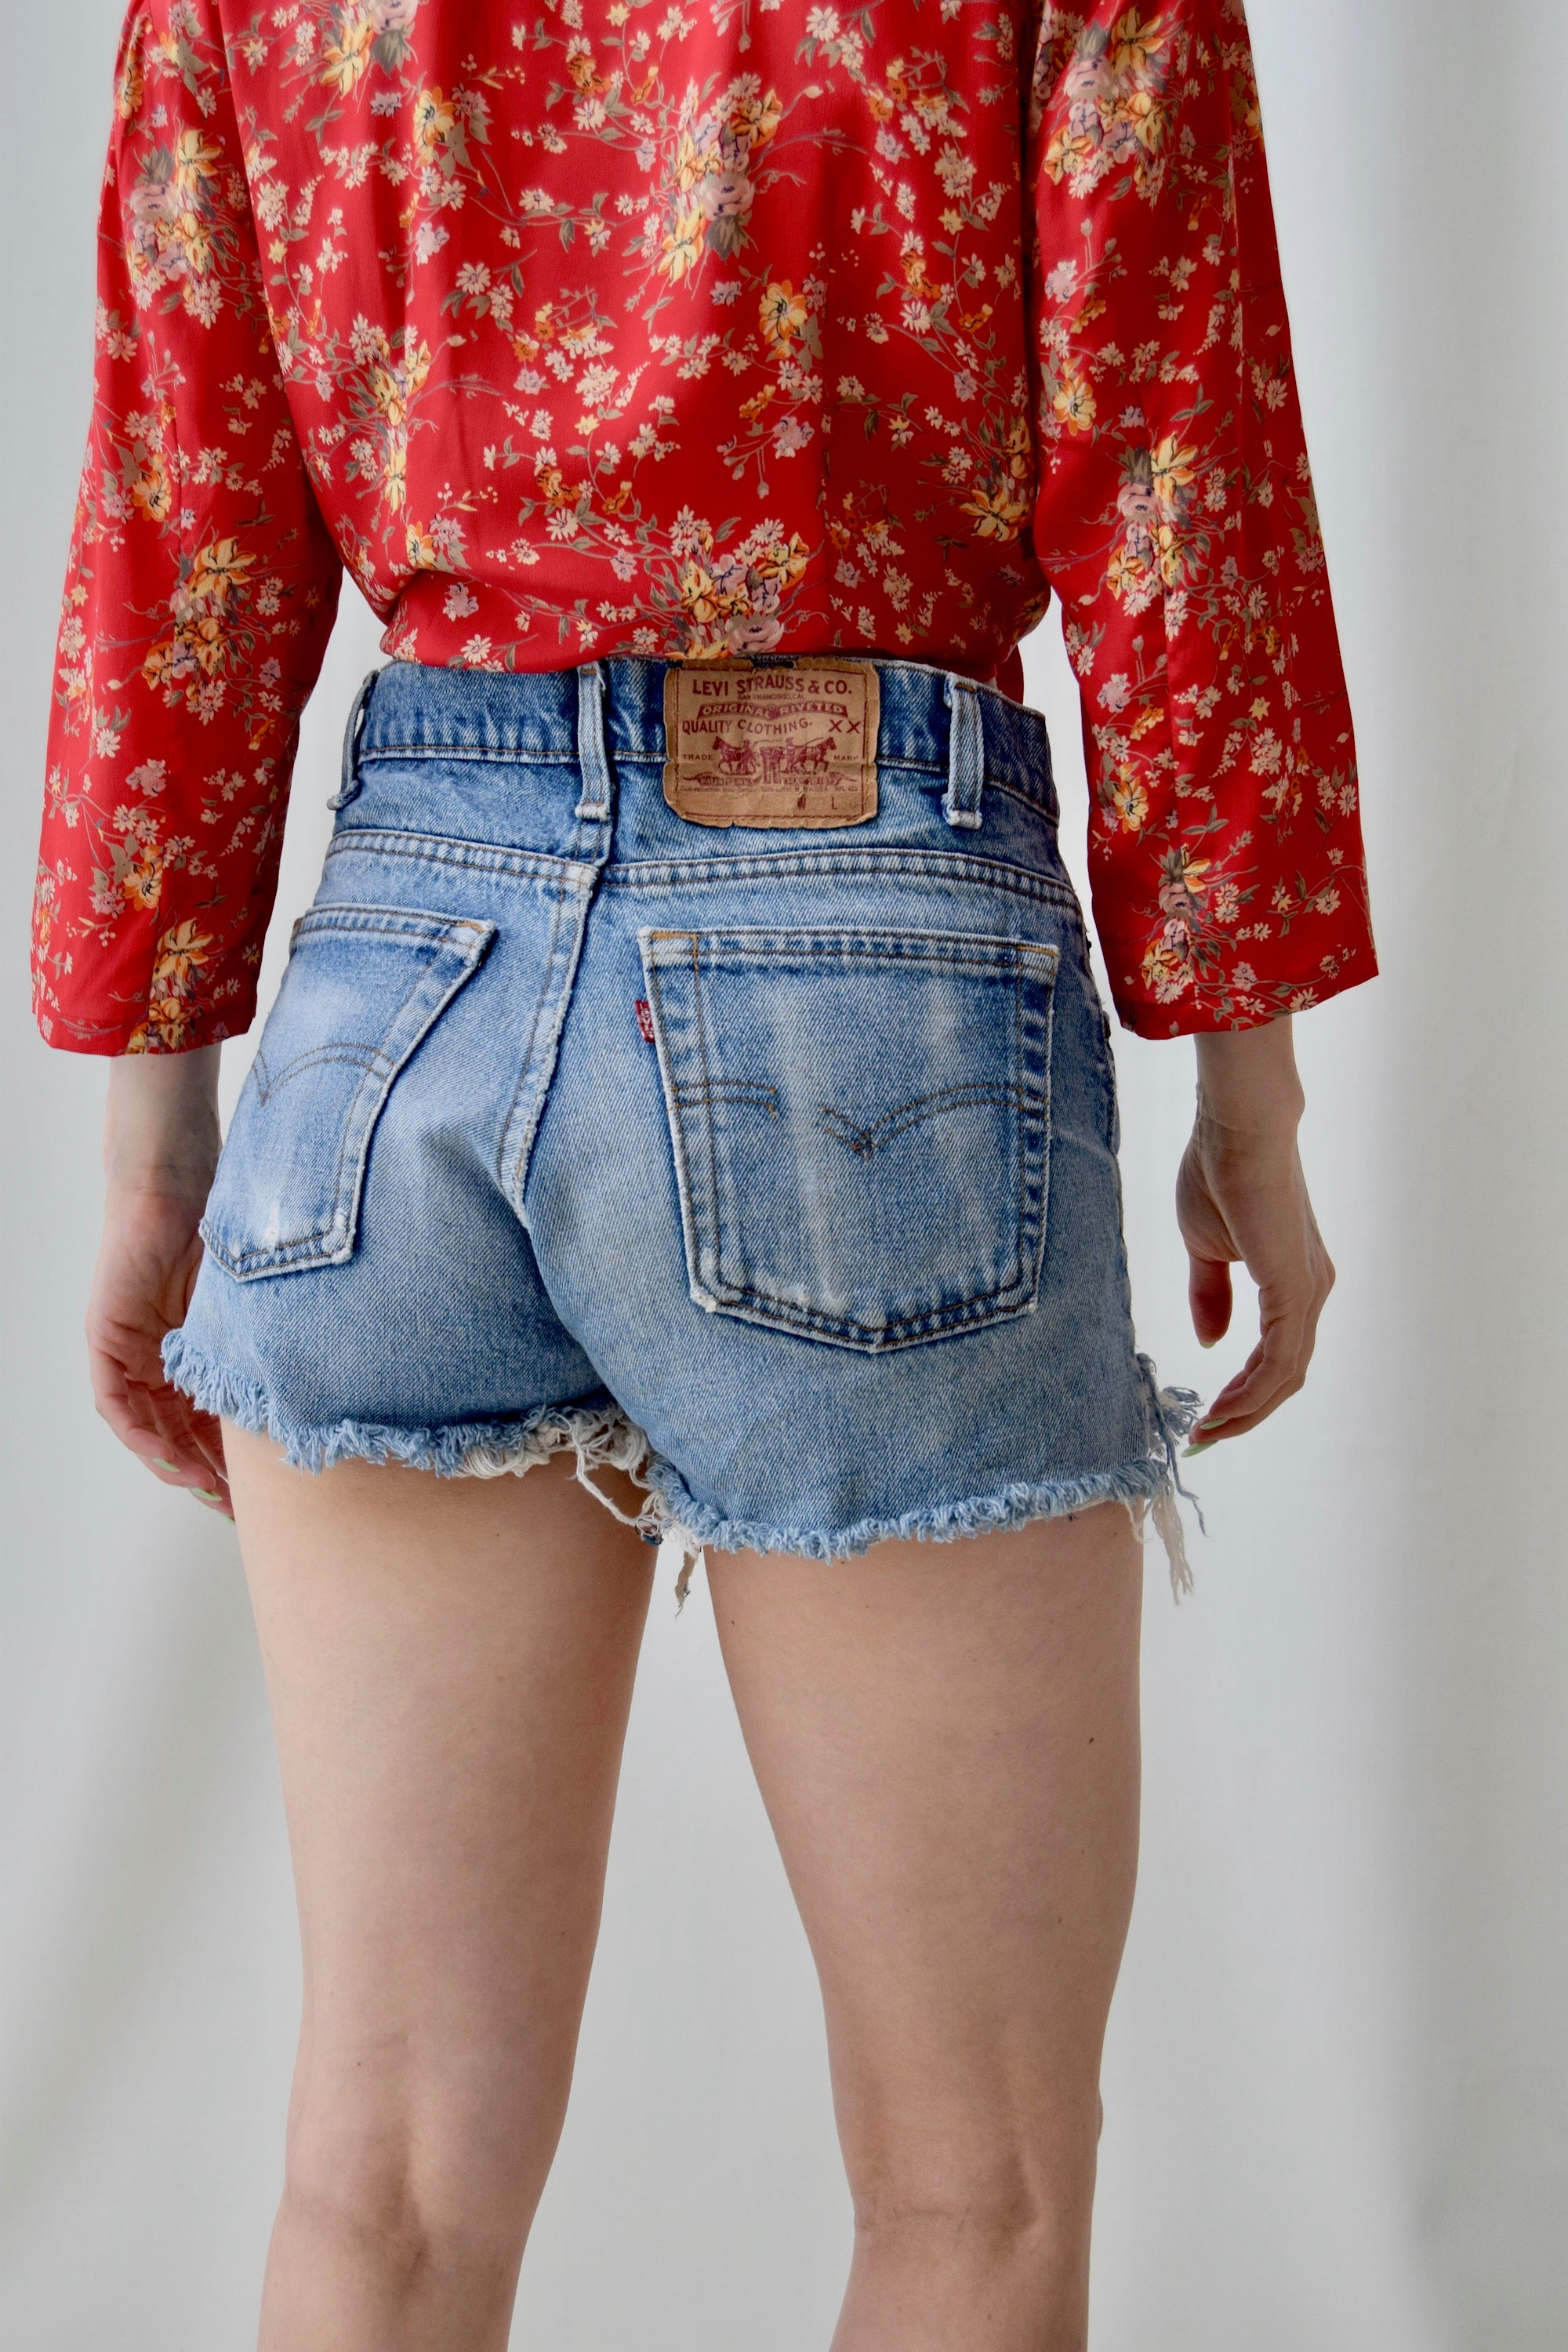 Blue Jean Levis Cut Off Shorts